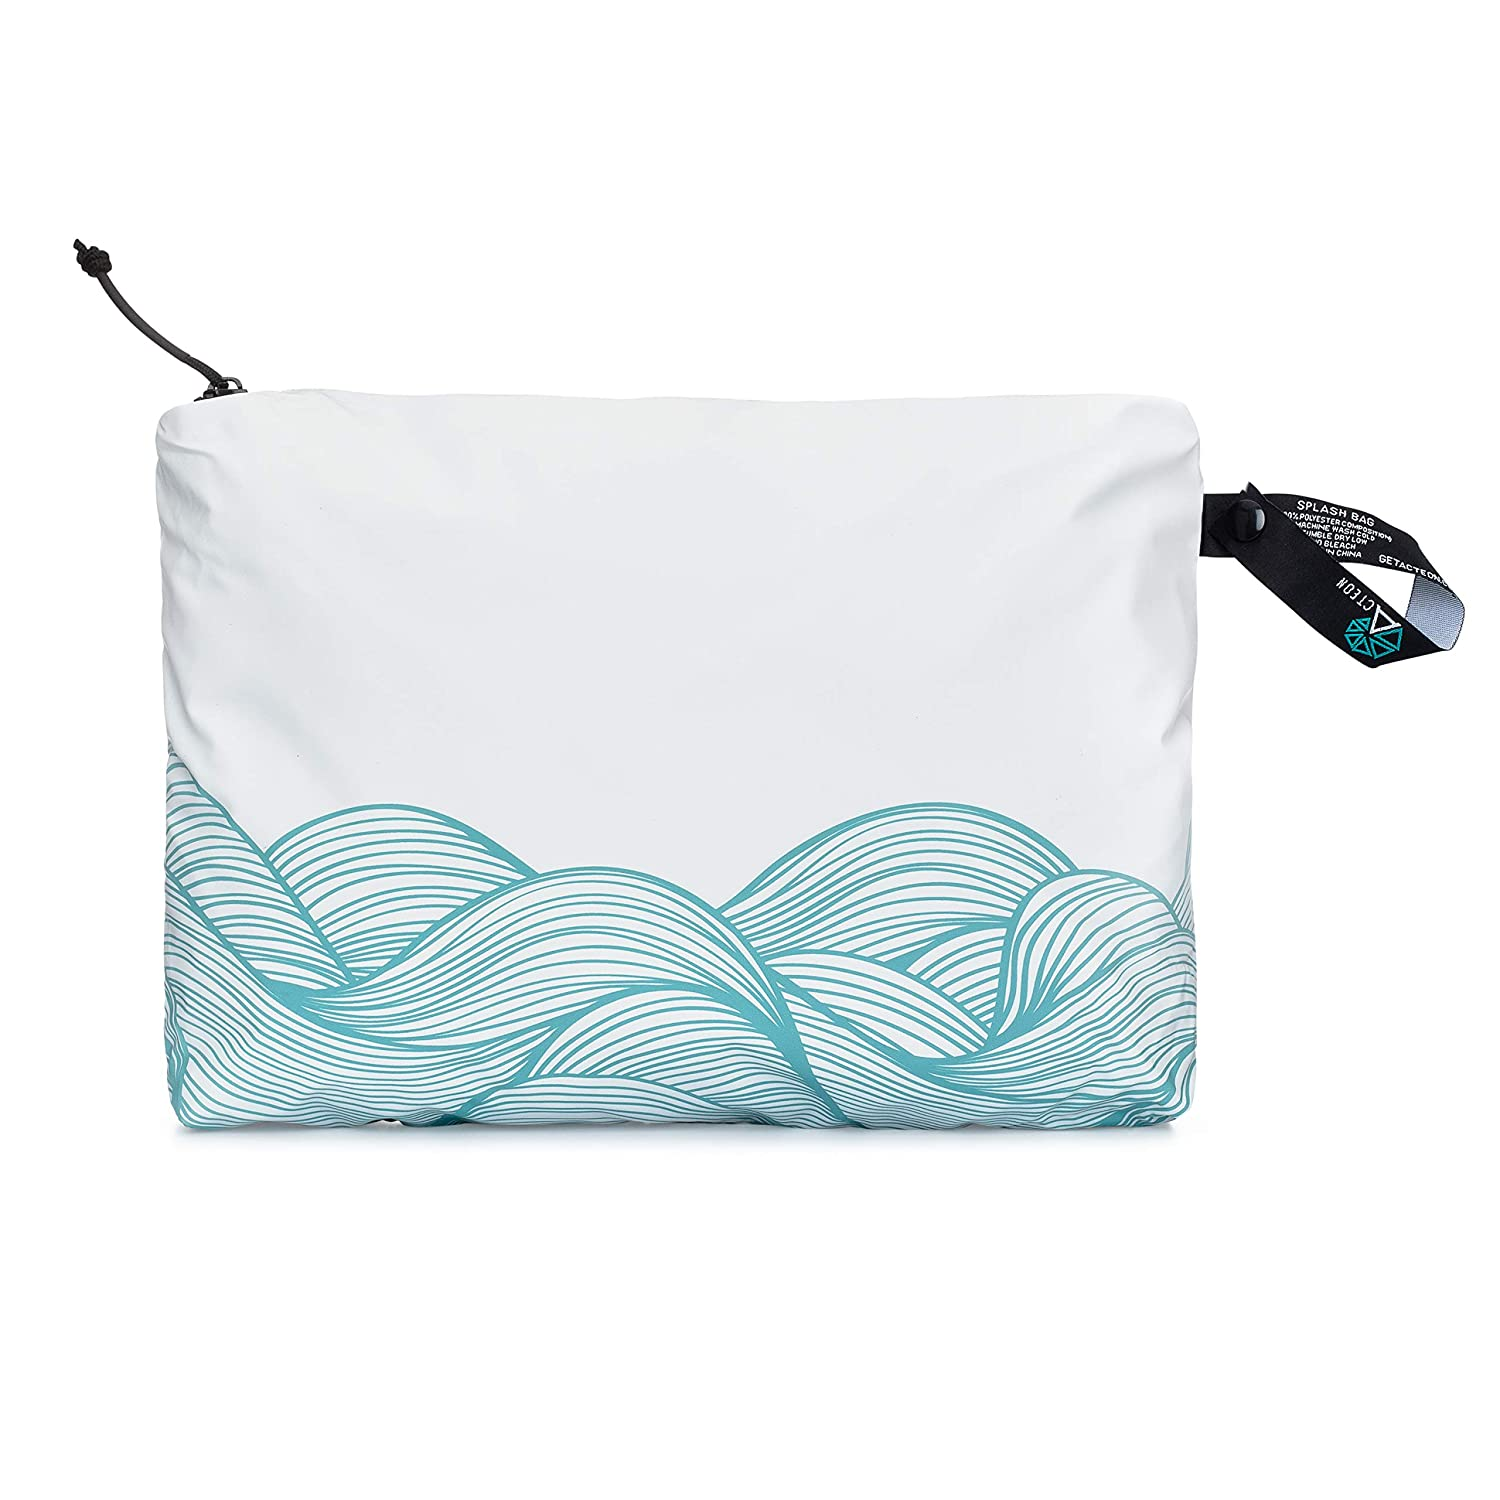 Acteon Wet Bag Multipurpose Wet Dry Bag - for Cloth Diaper, Swimsuit & Travel - Water Resistant Wet Bags - Reusable with Strong Zipper Perfect for Wet Clothes, Toiletries, Beach, Pool & Gym